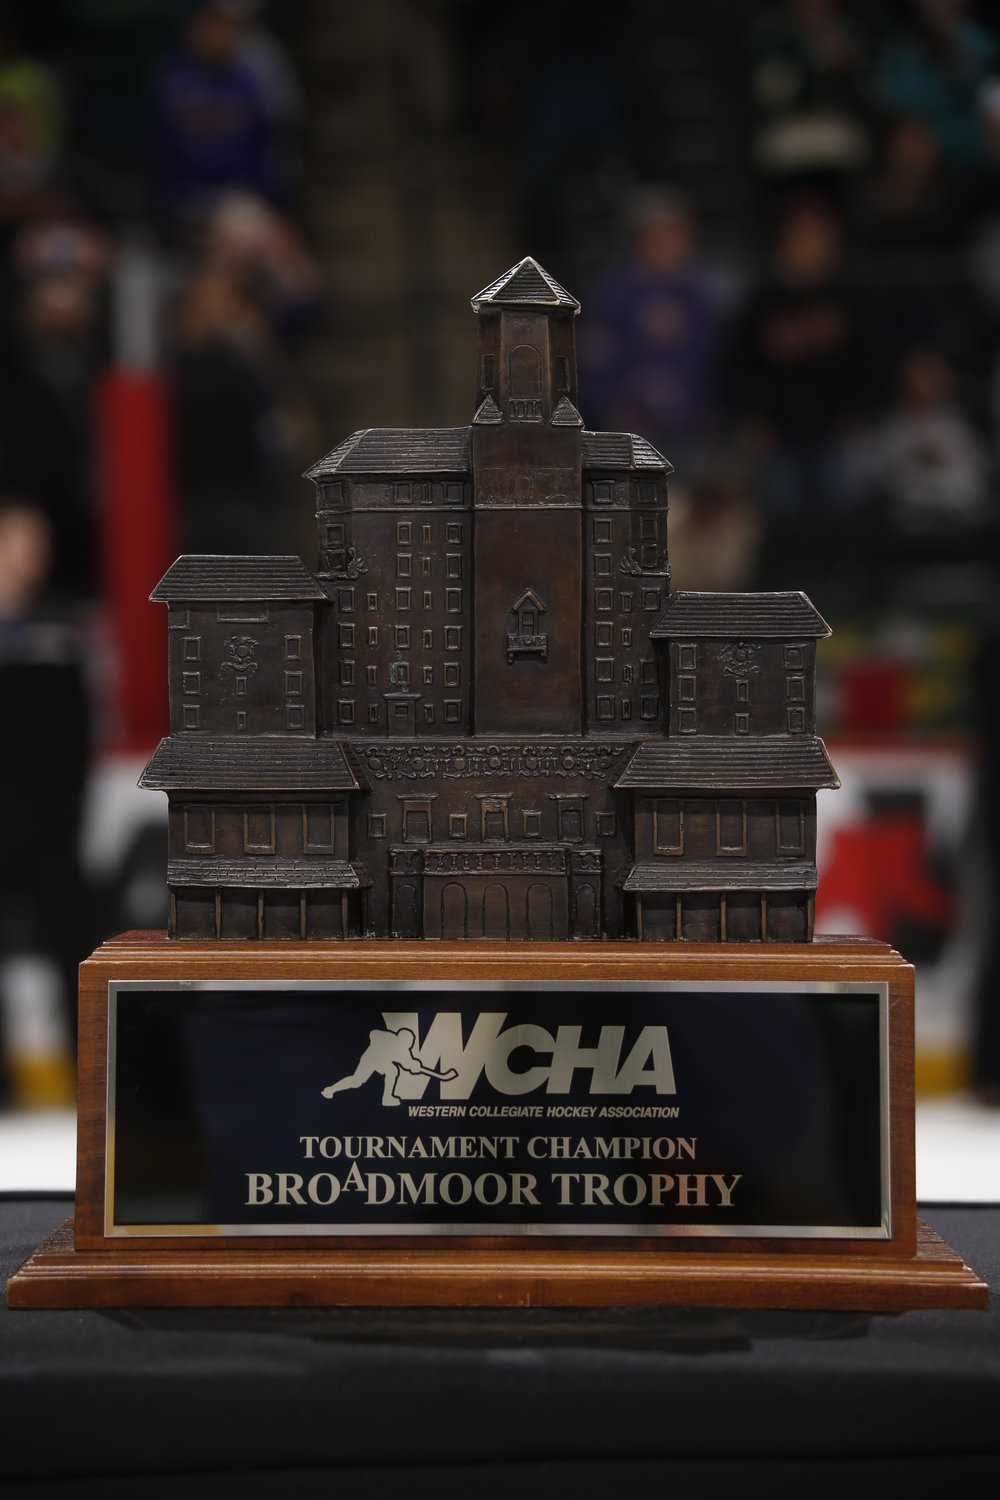 This weekend's prize, the Broadmoor Trophy (Photo courtesy WCHA).